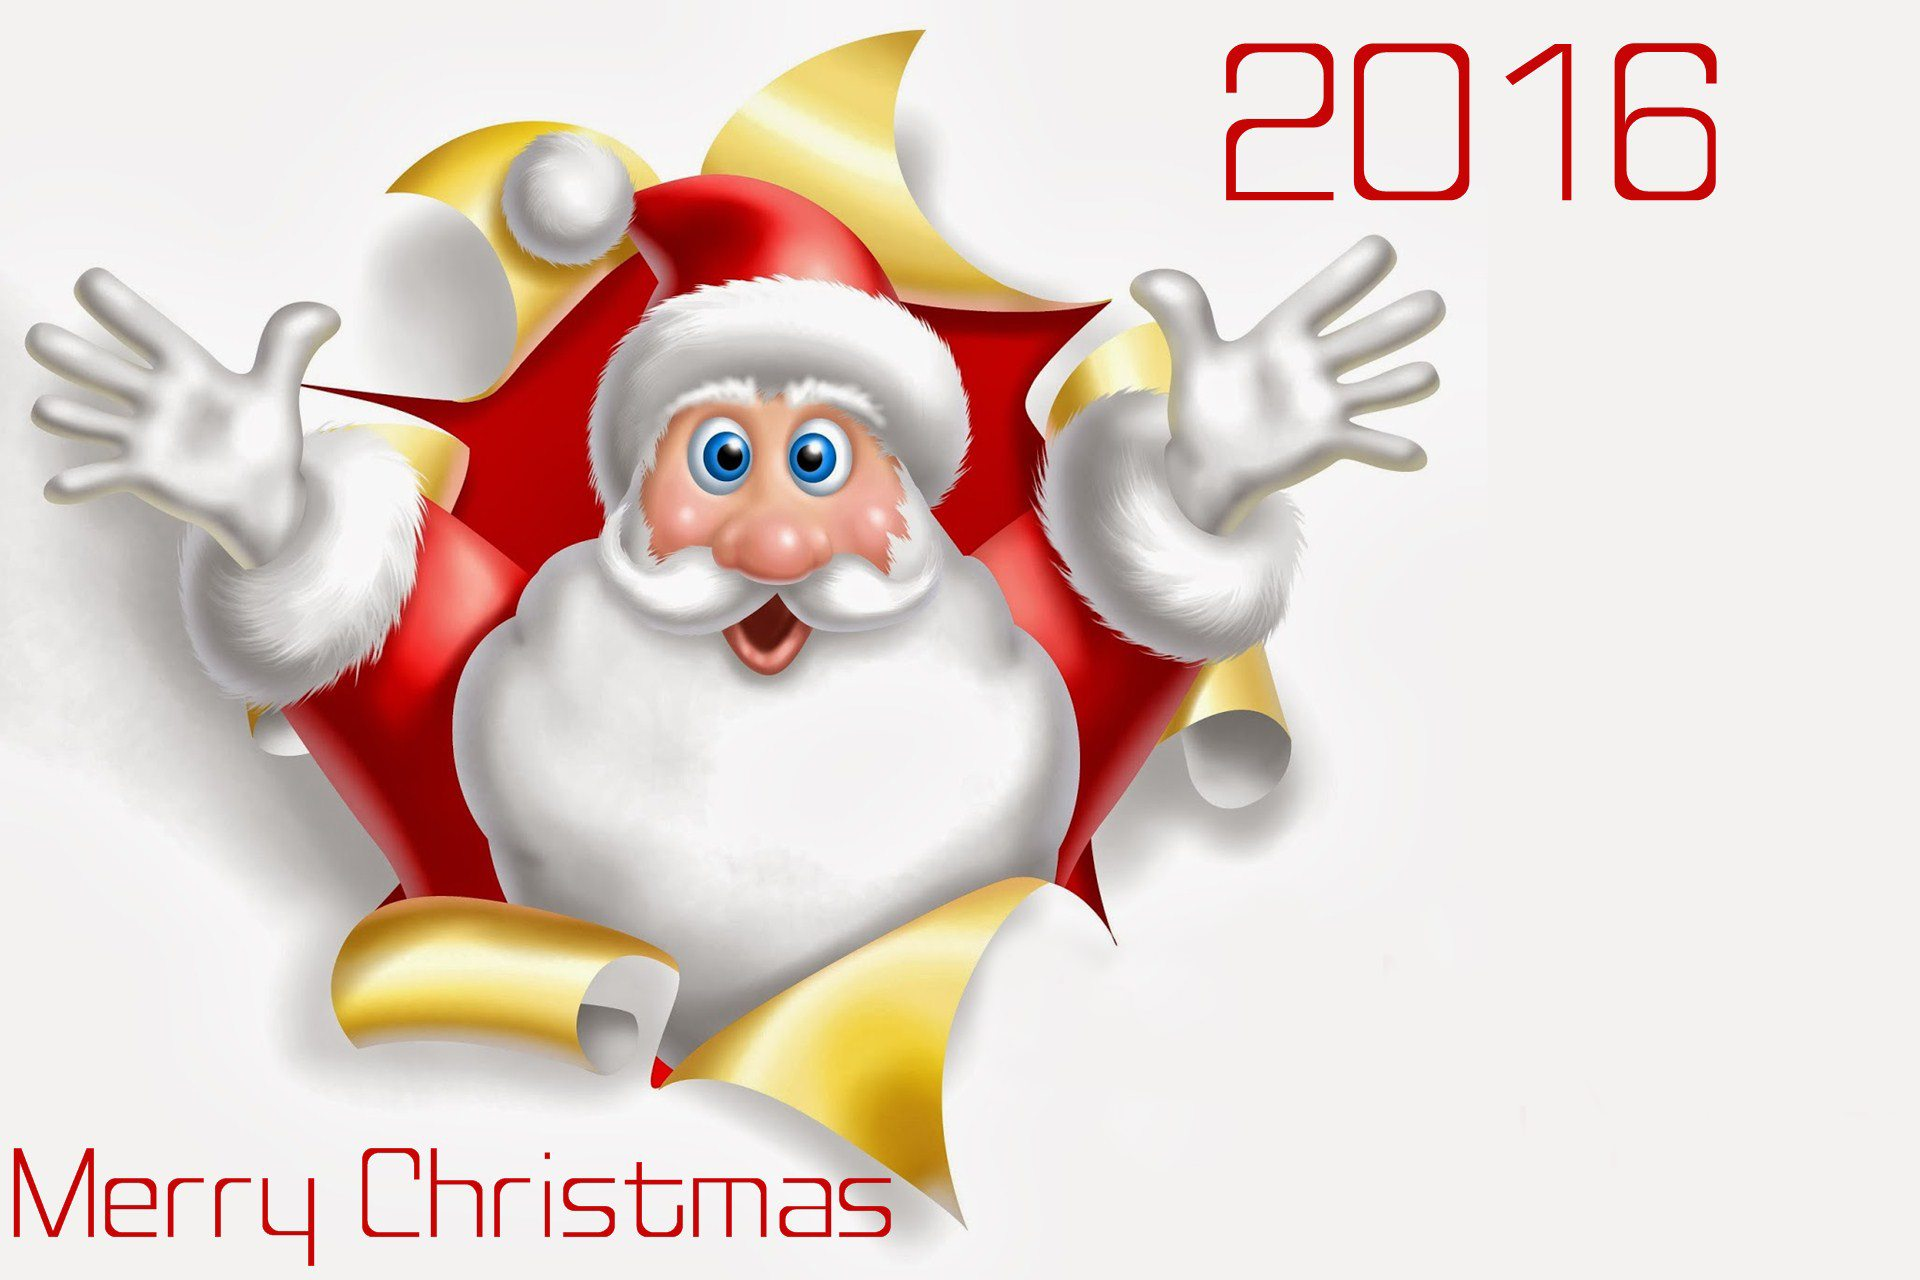 merry-christmas-and-happy-new-year-2016-santa-wishes copy